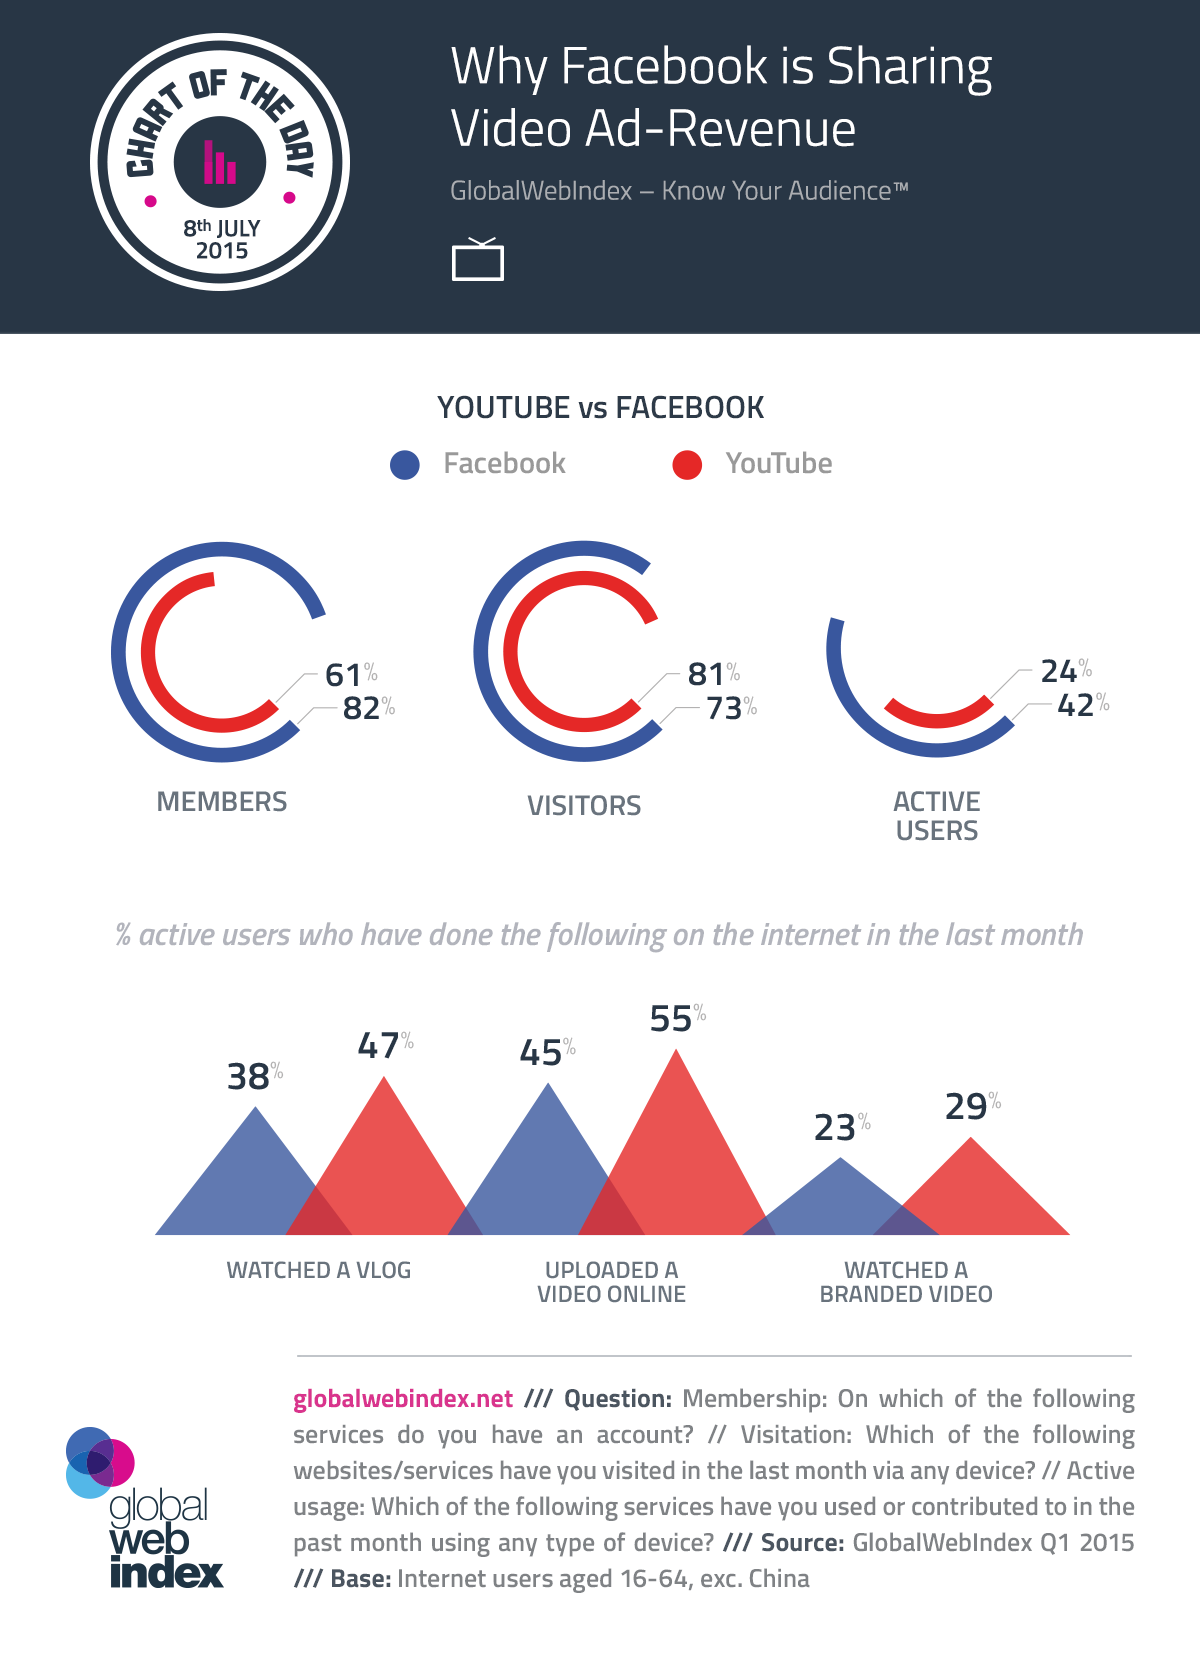 08th-July-2015-Why-Facebook-Is-Sharing-Video-Ad-Revenue